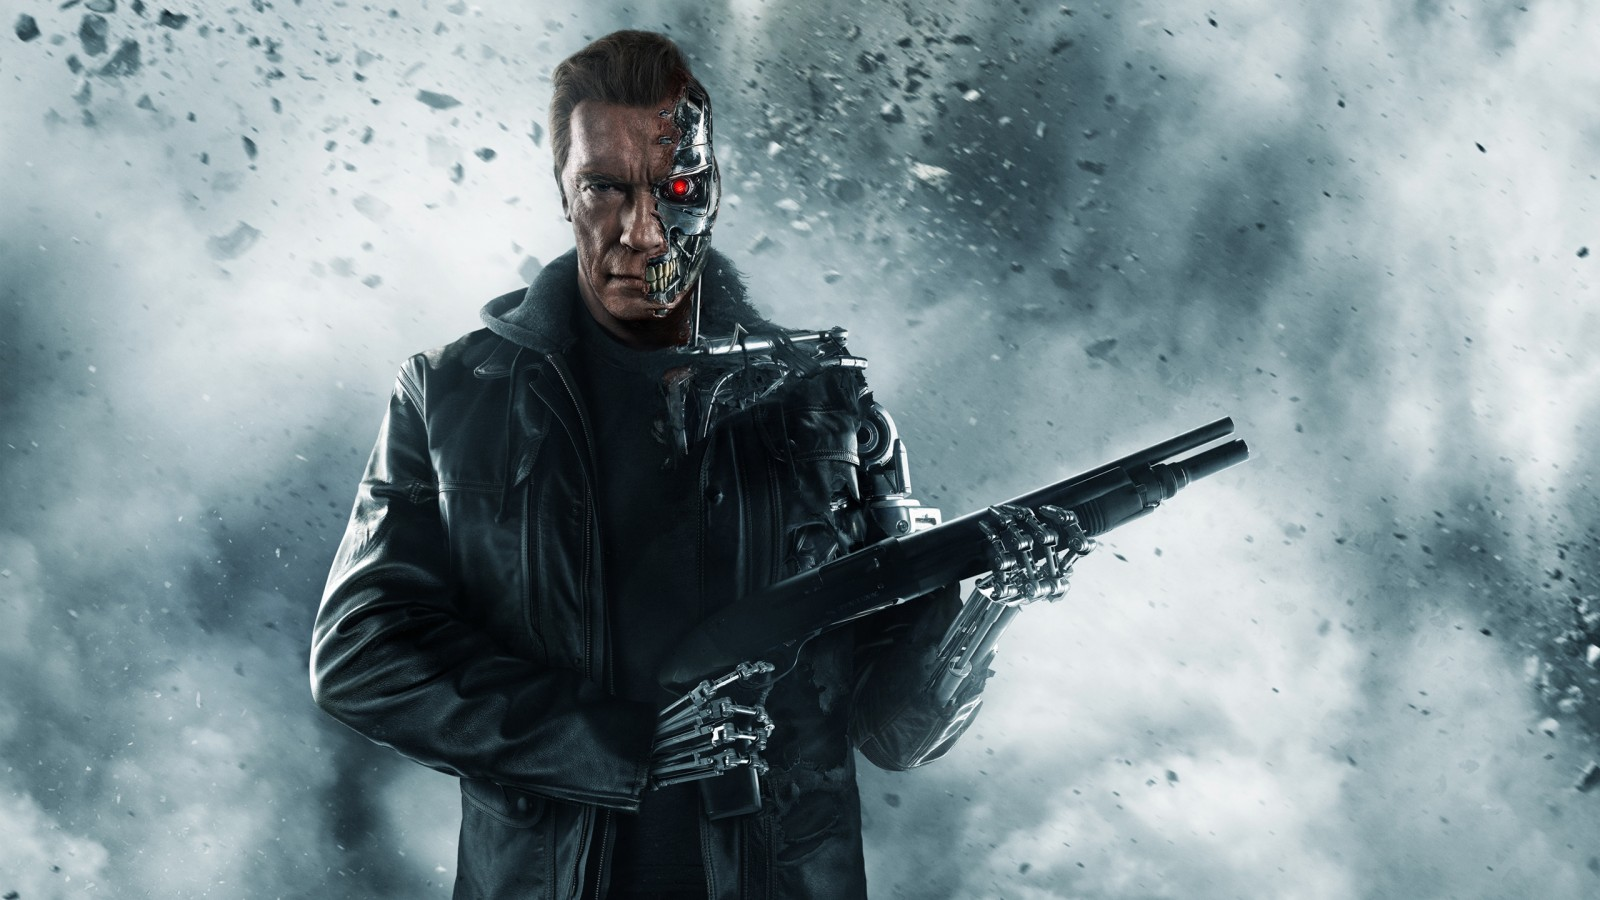 Free Cute Wallpapers For Android Arnold Schwarzenegger Terminator Wallpapers Hd